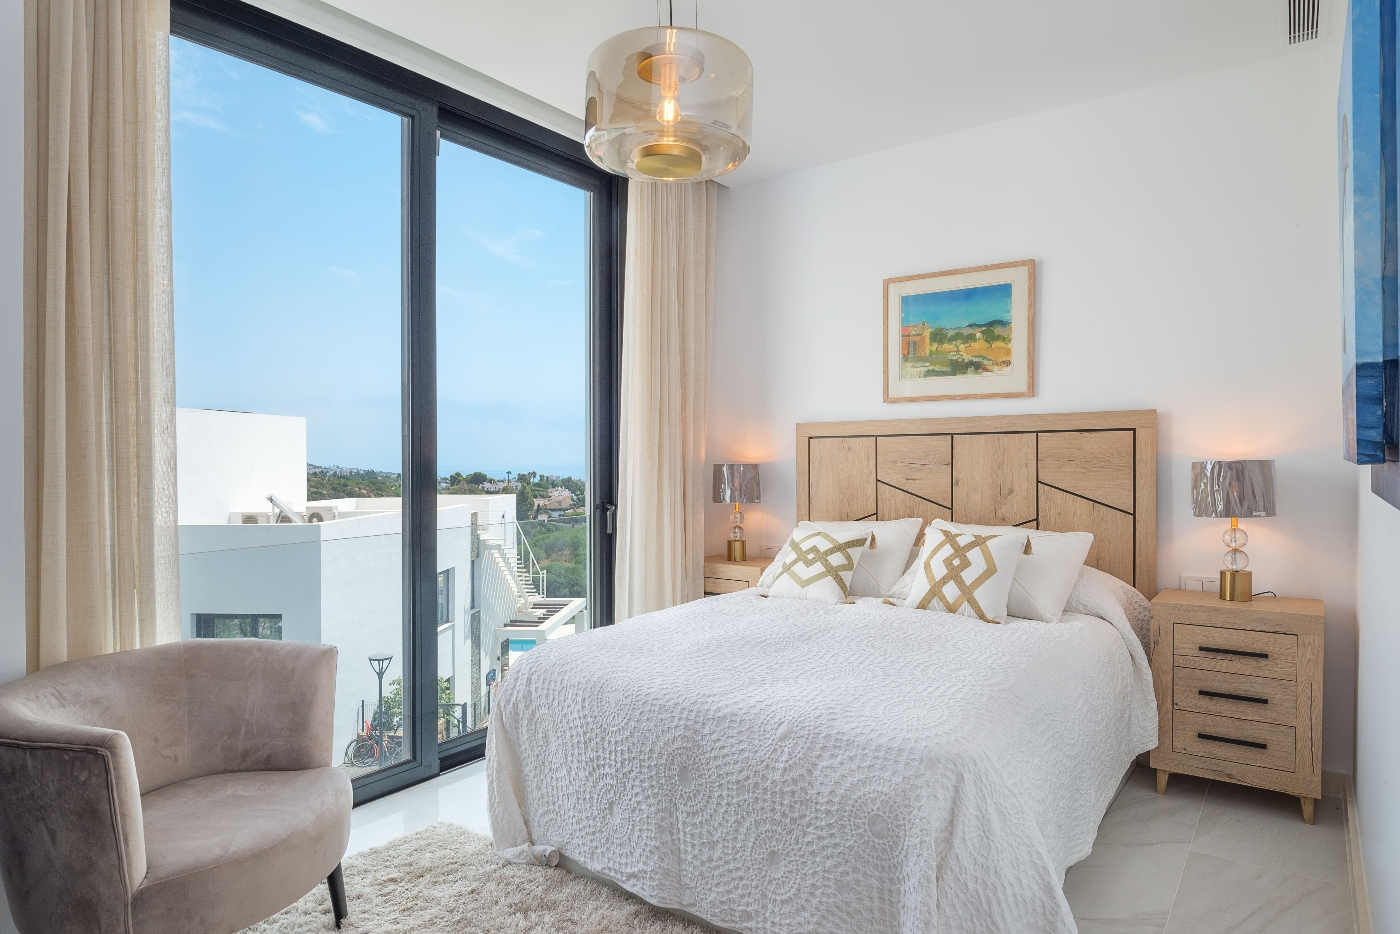 2nd bedroom with sea views